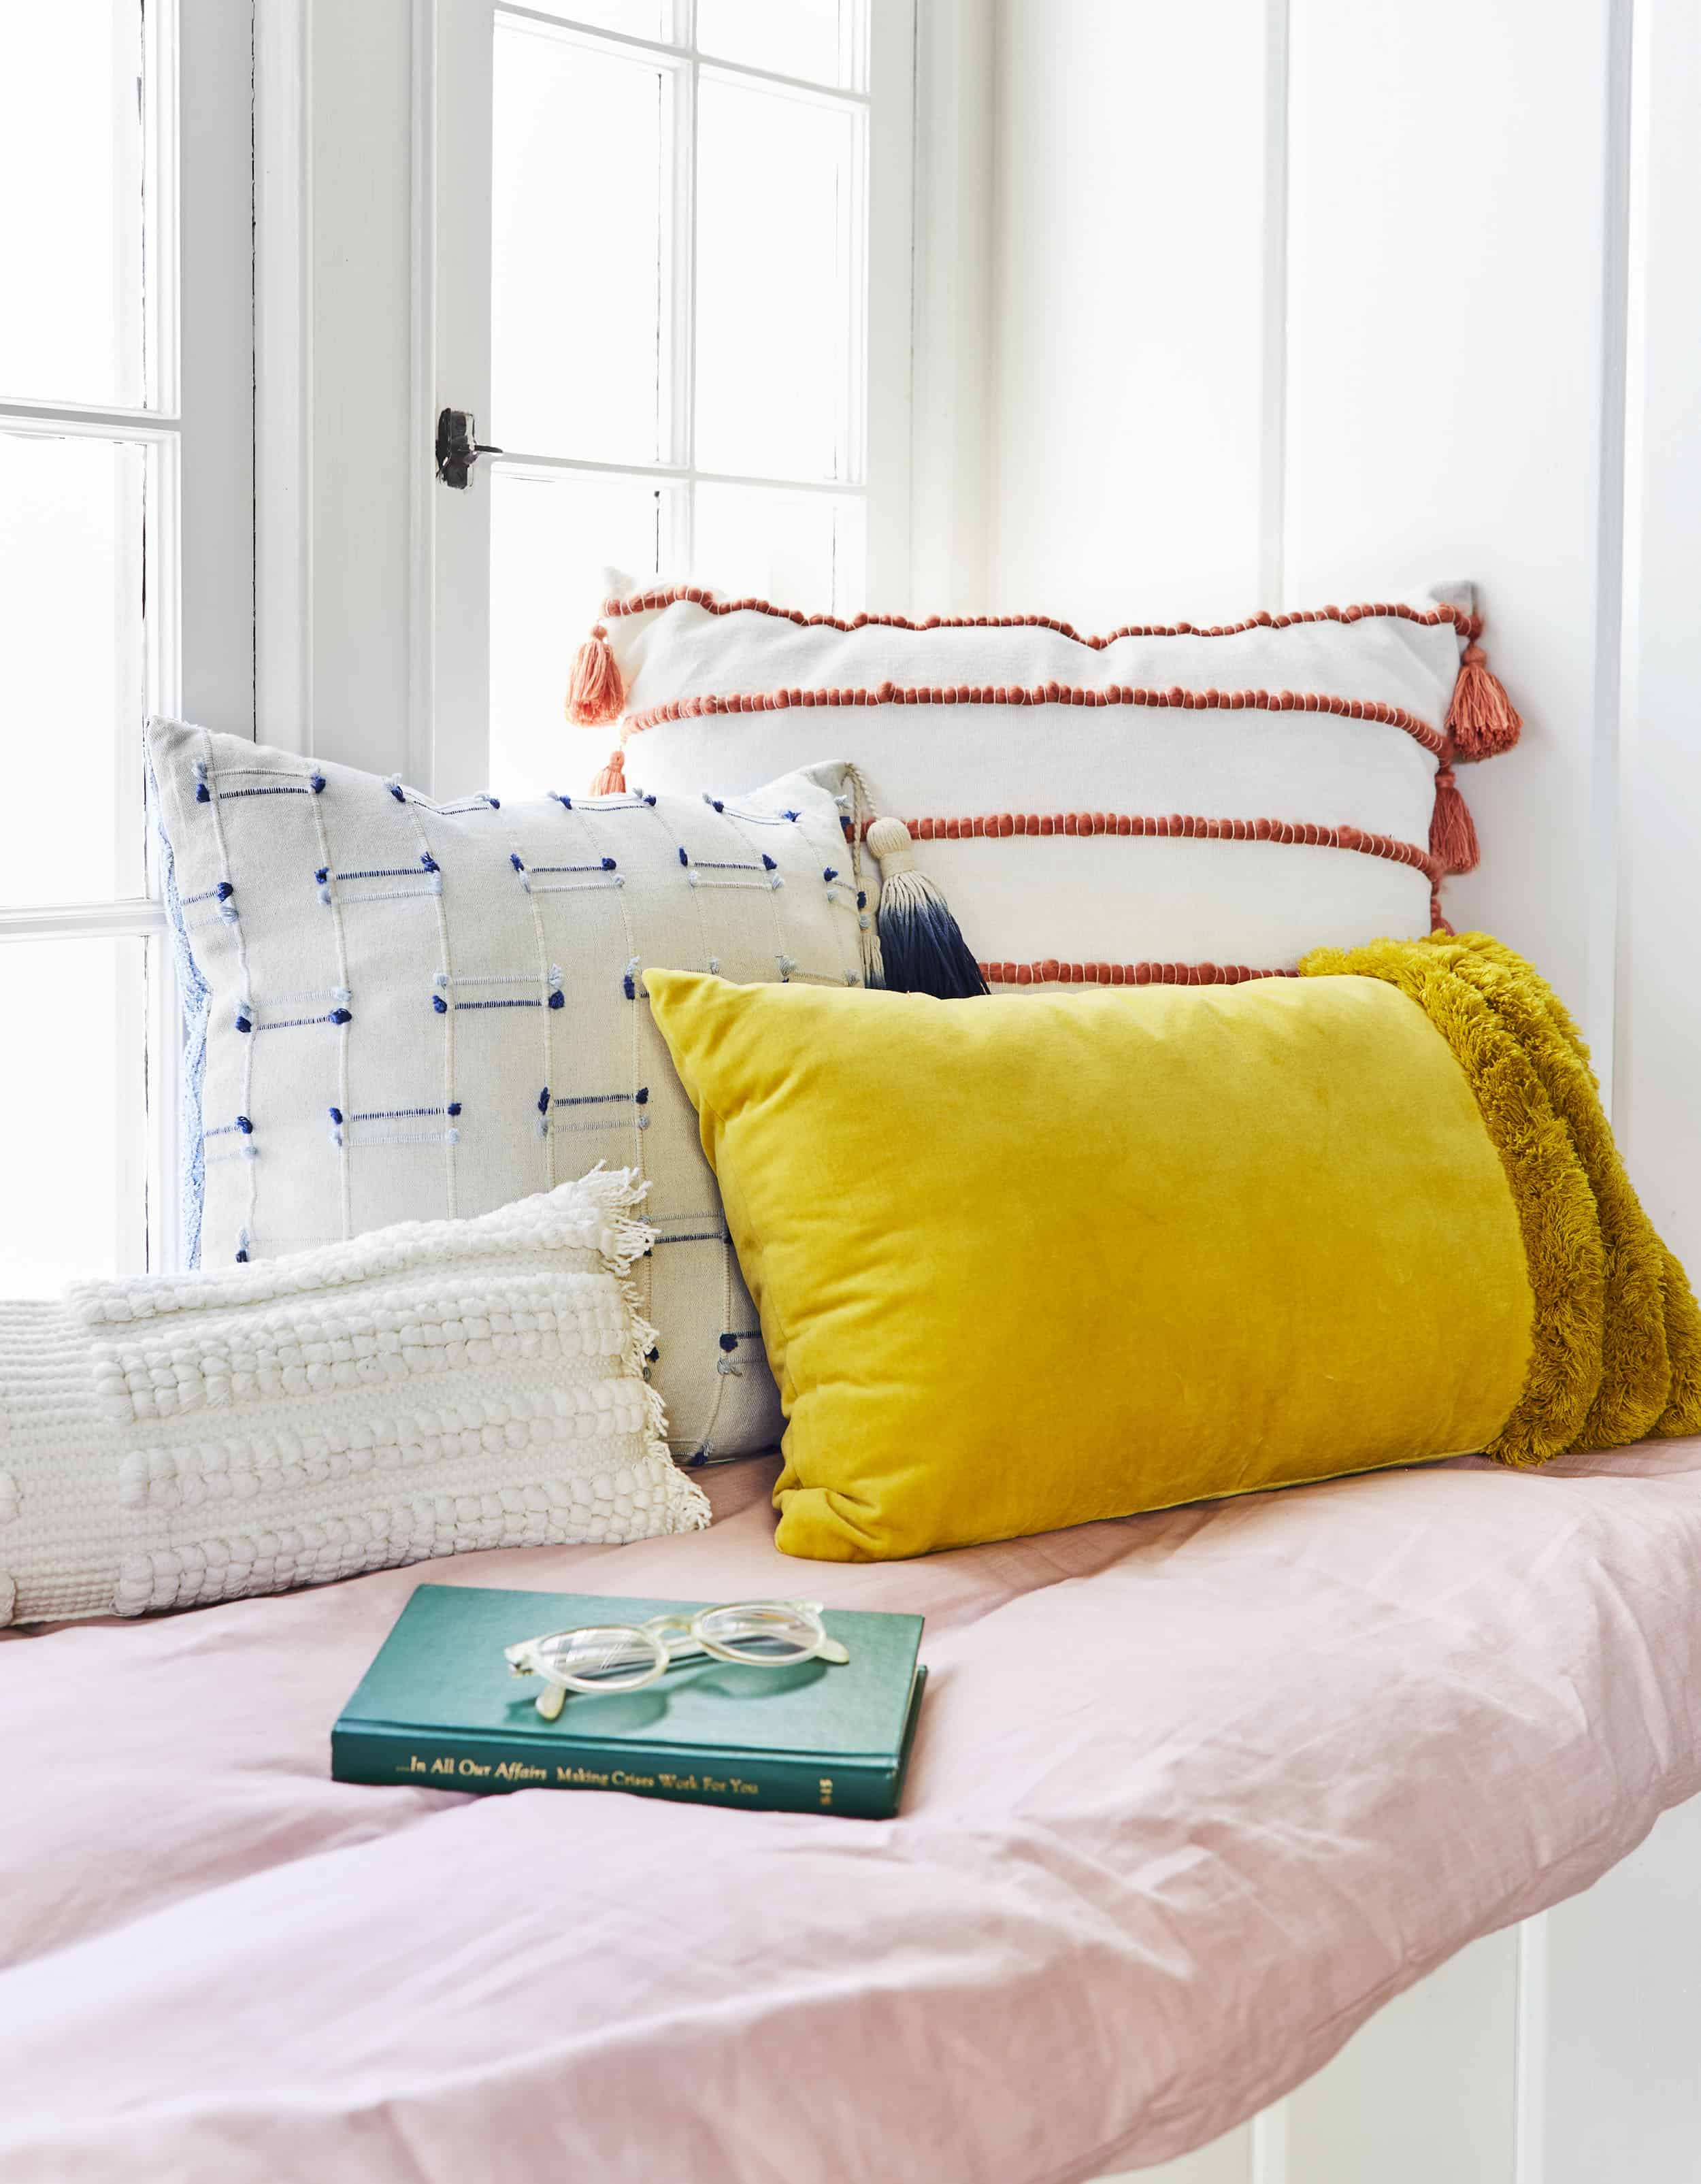 Target Opalhouse Spring 2019 Emily Henderson Lores33